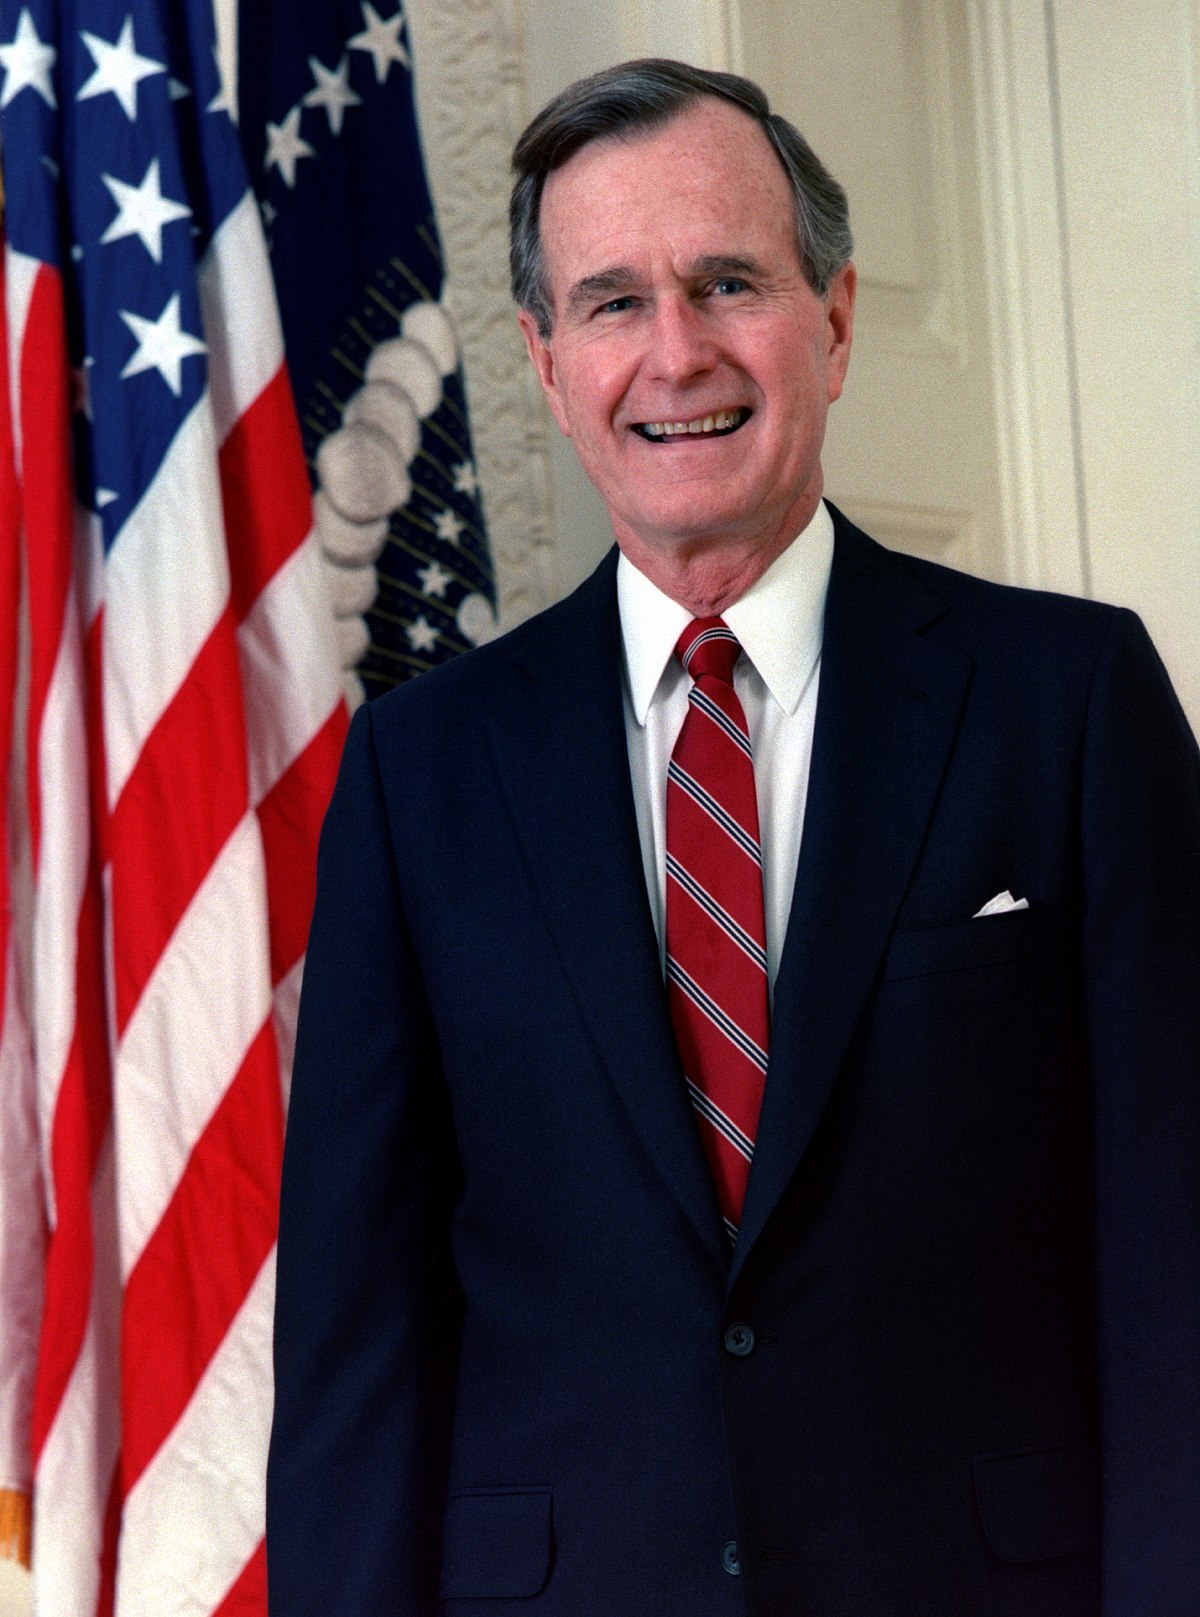 George H W Bush Wikipedia - Wiki us presidents